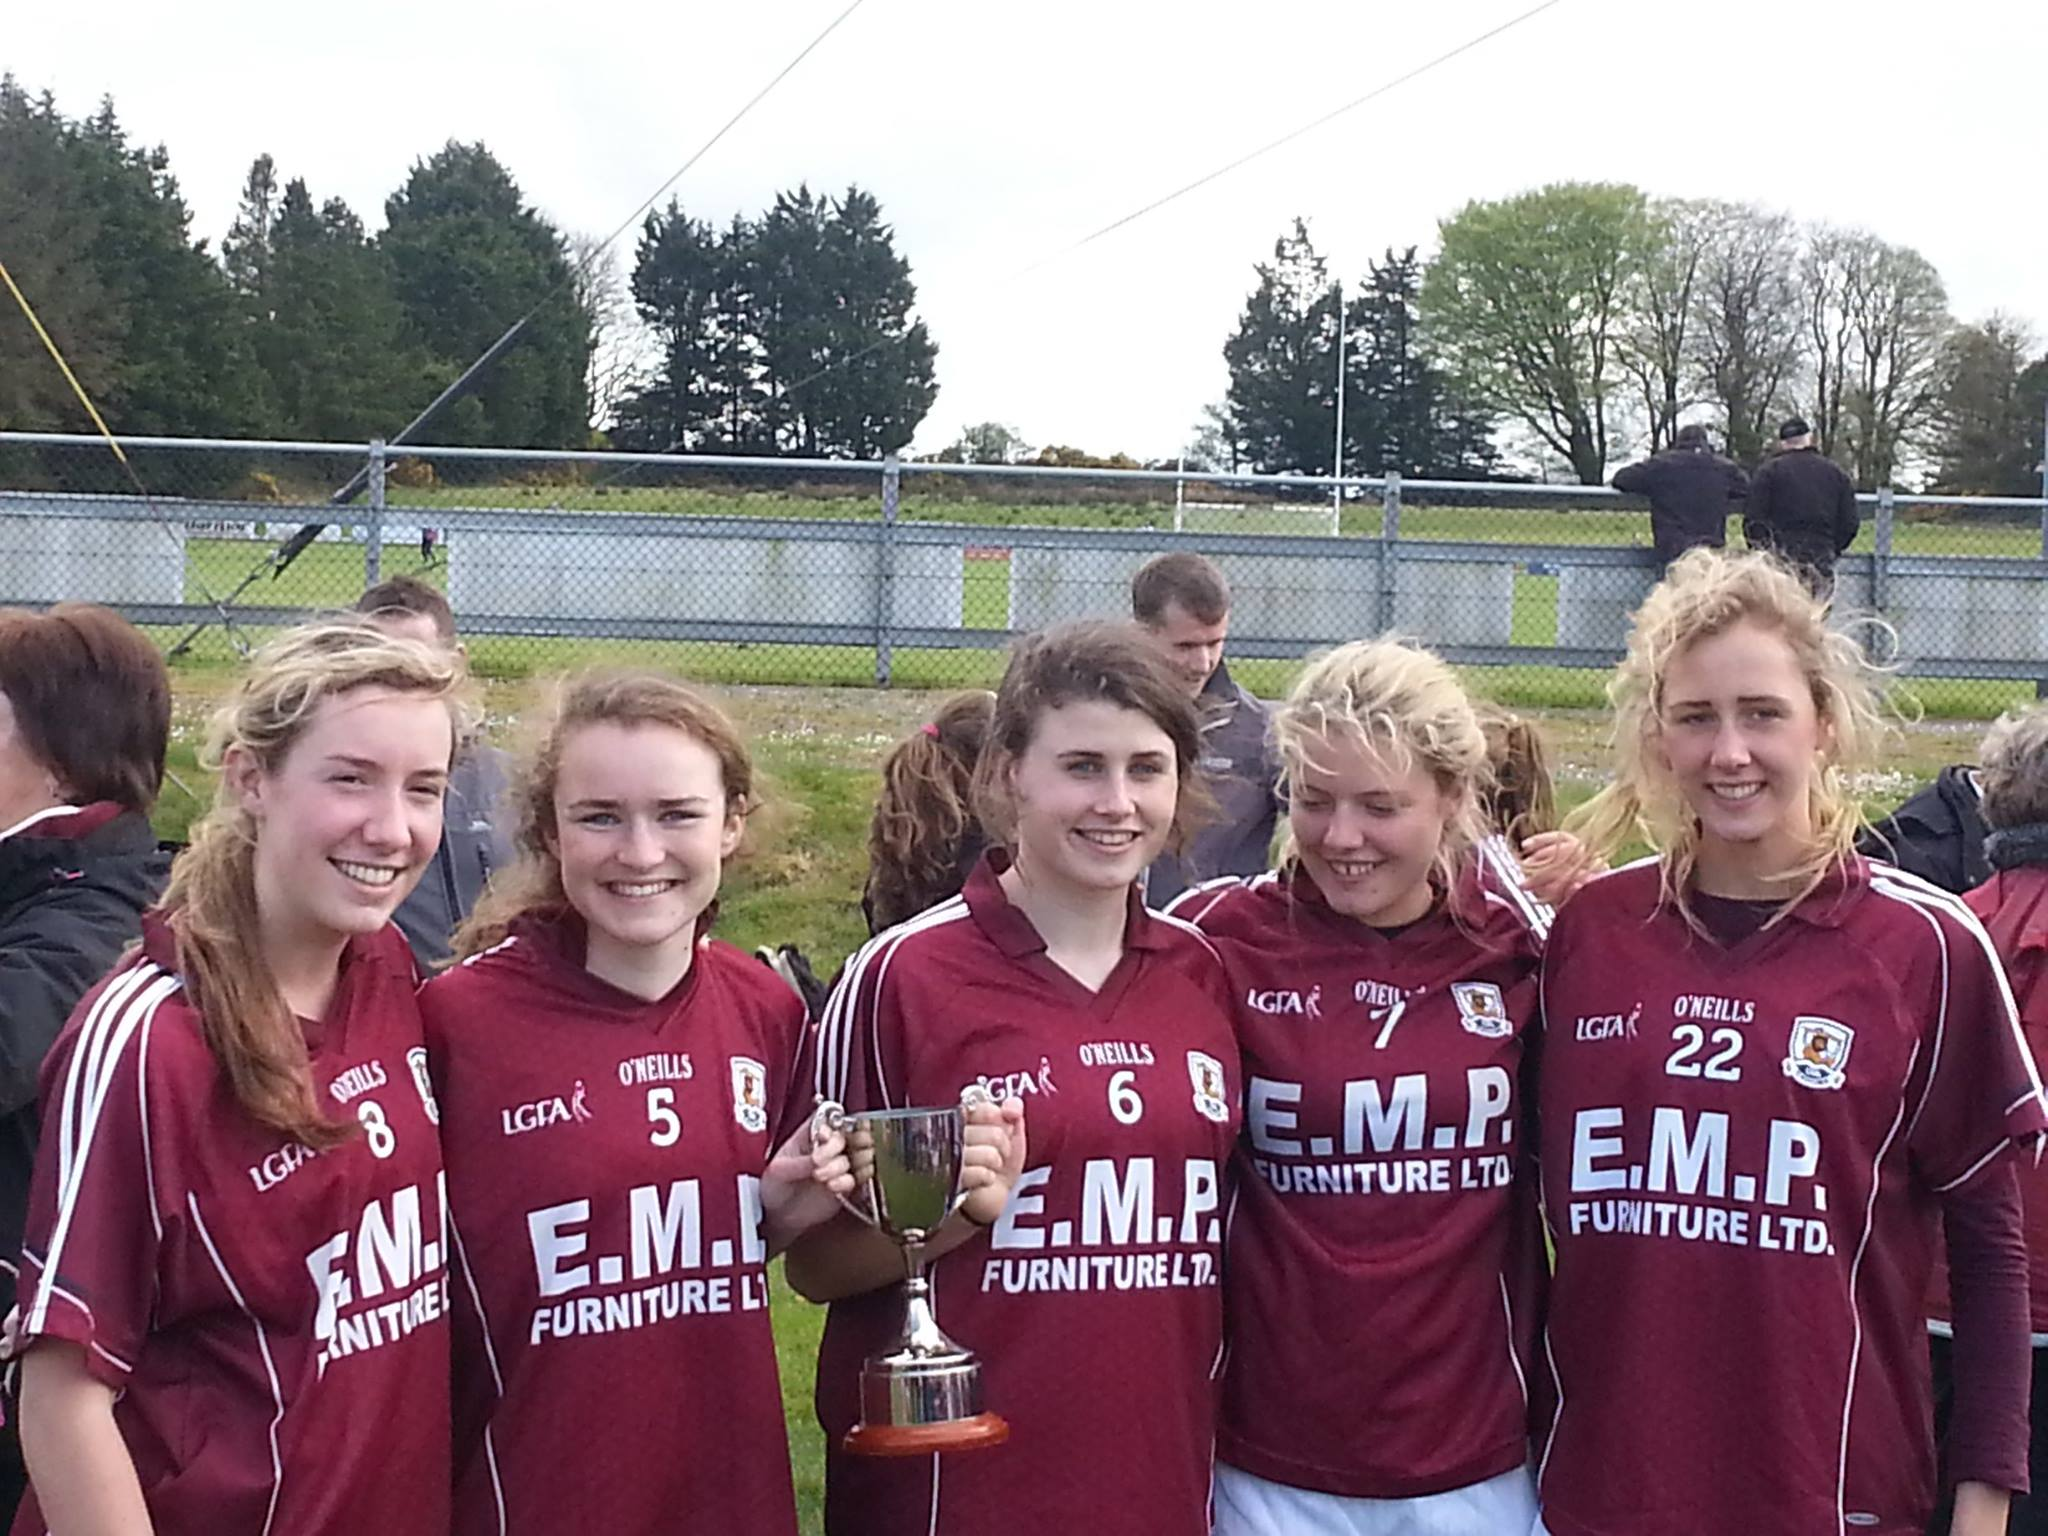 Claregalway were well represented on the Galway Minor ladies panel with the halfback line being all Claregalway—Orla Murphy, Karen Dowd and Elle Glynn—while Megan Glynn starred at midfield. Grace Cahill also saw action as a midfield sub in the second half.